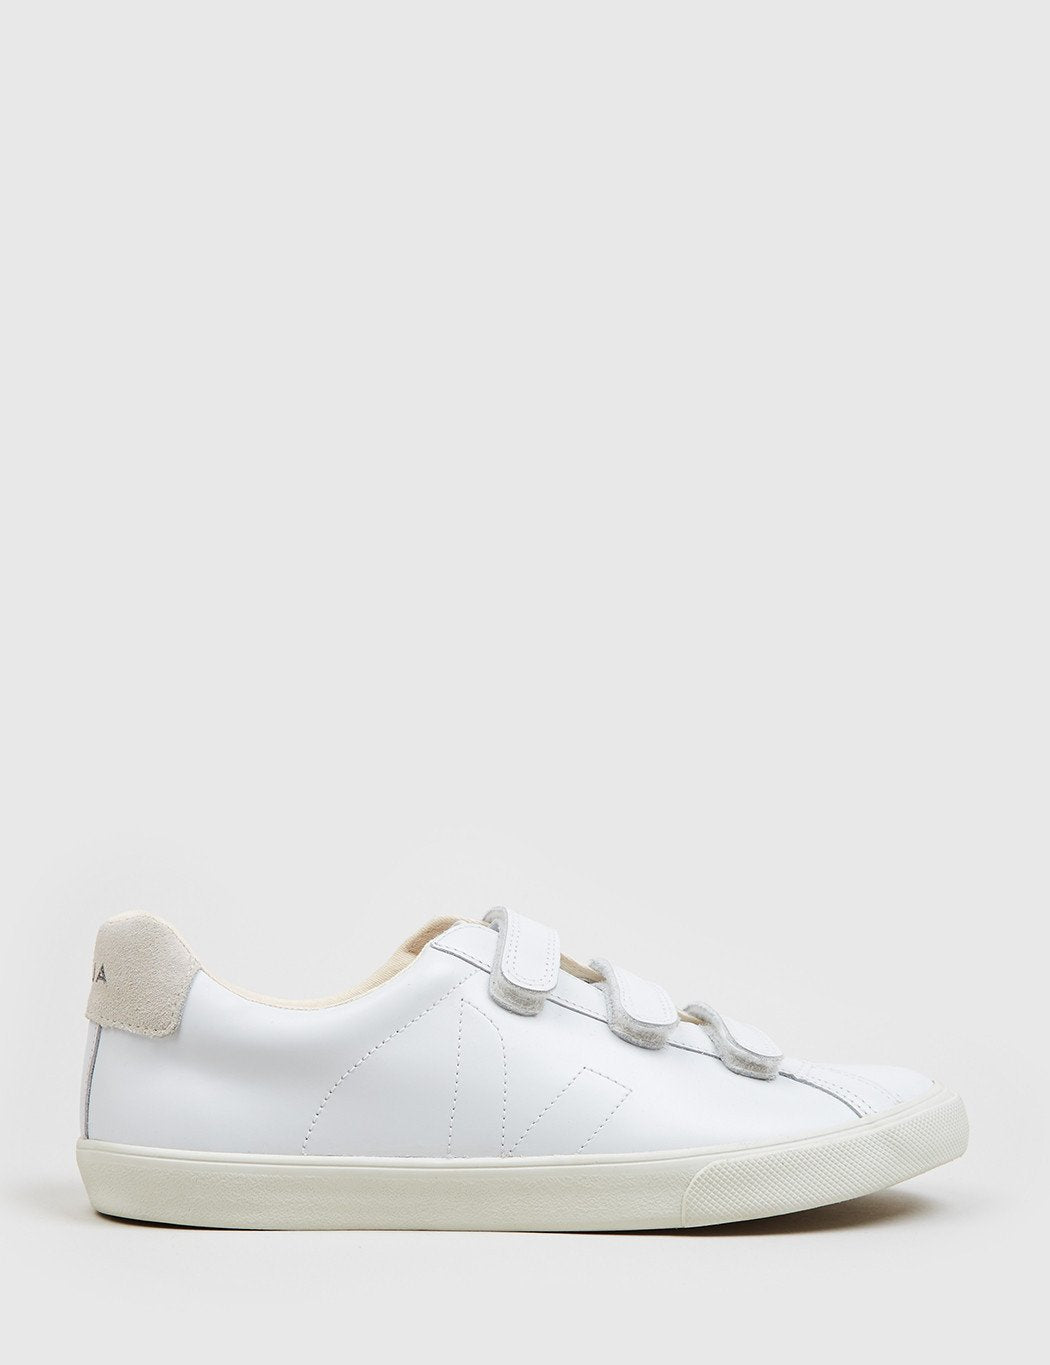 Free Shipping Visa Payment Esplar Rubber Sole Velcro Leather Trainers Veja Clearance Fashion Style Discount 100% Guaranteed Clearance Pre Order For Cheap For Sale vOI2DeU2